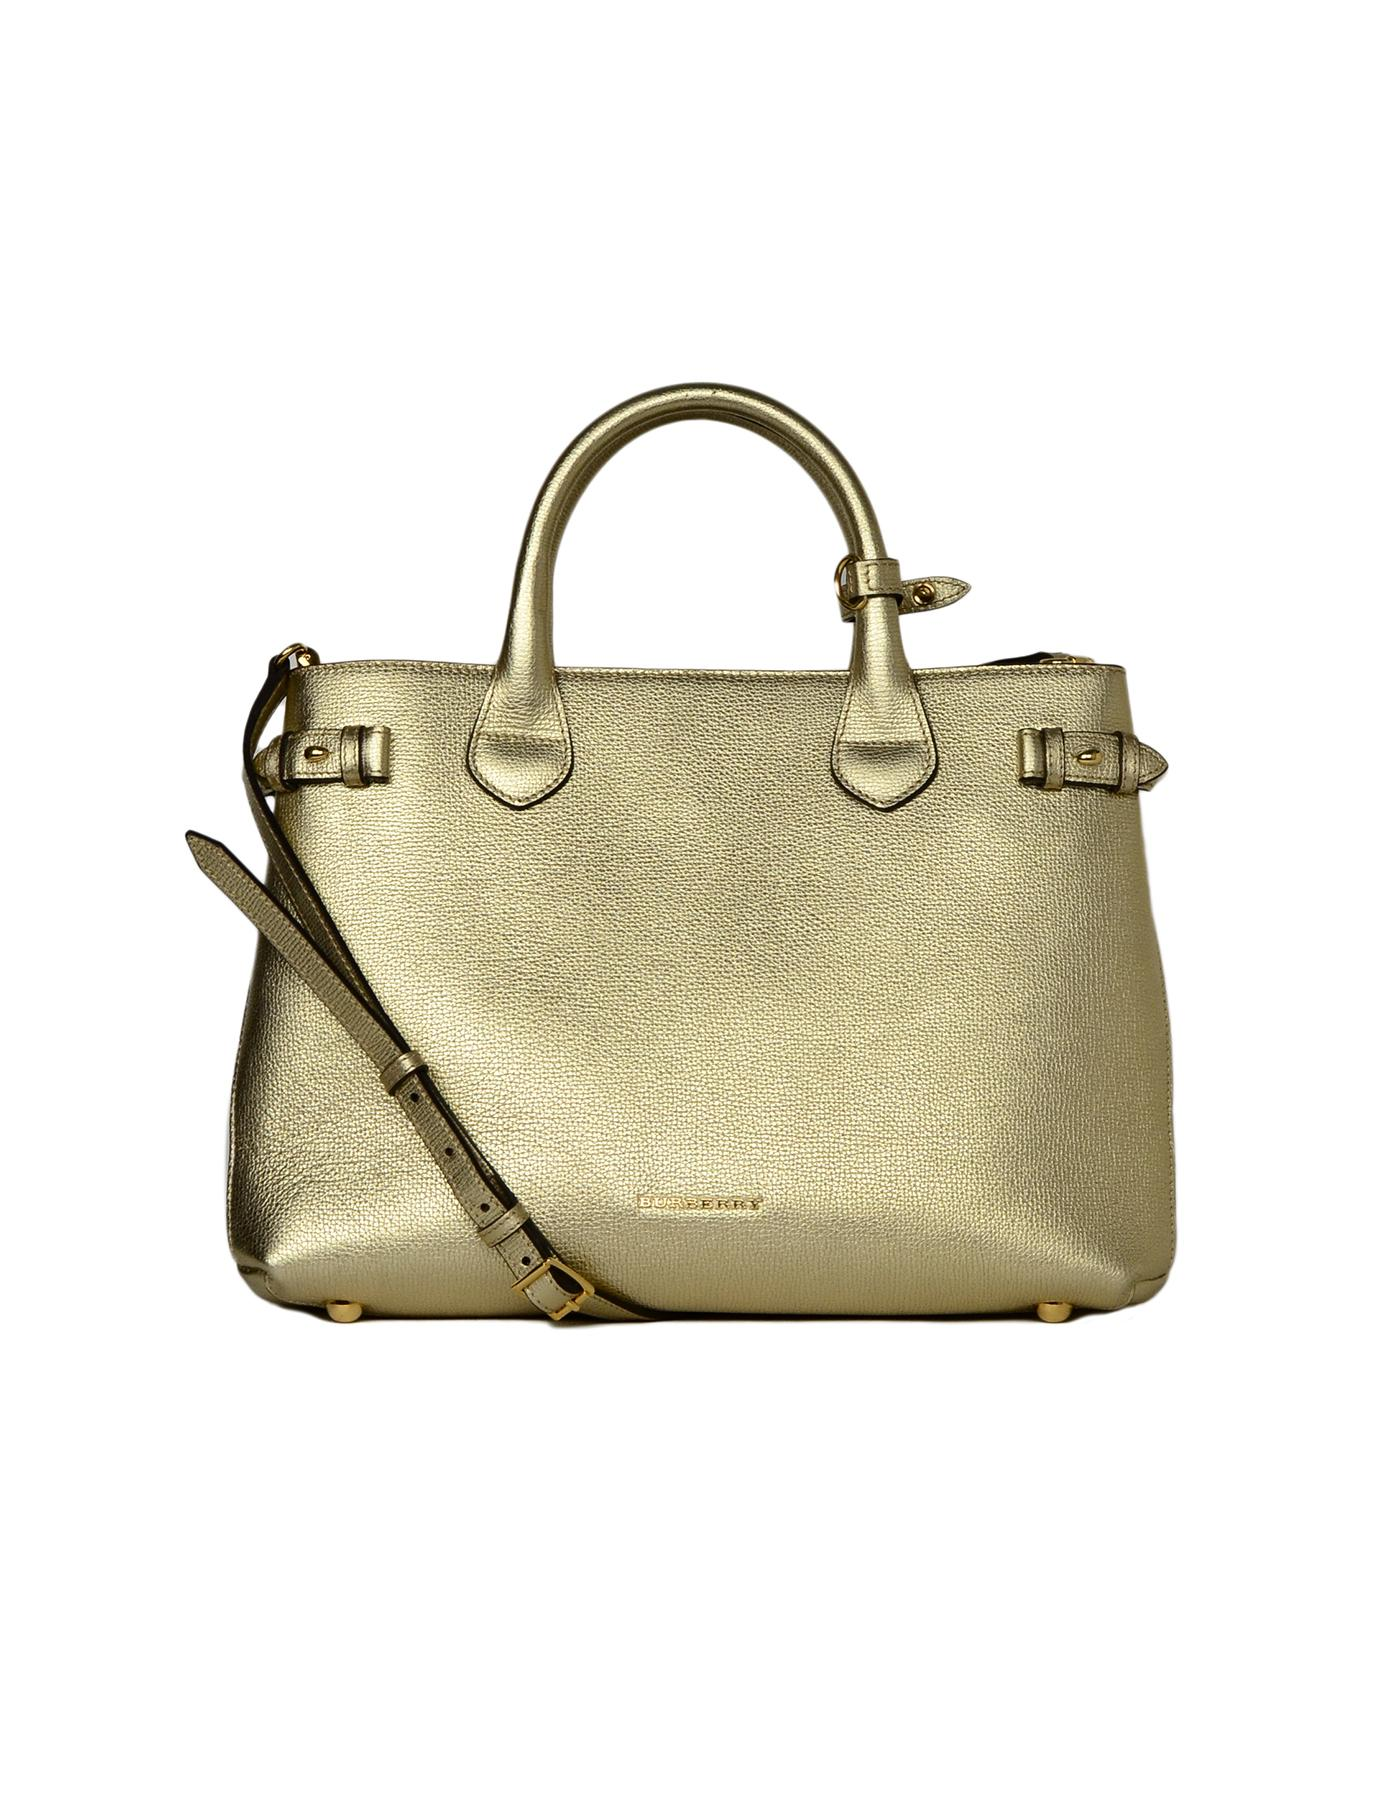 3b6f7b183a8 Burberry gold metallic leather banner tote bag tartan plaid canvas sides  for sale at stdibs JPG